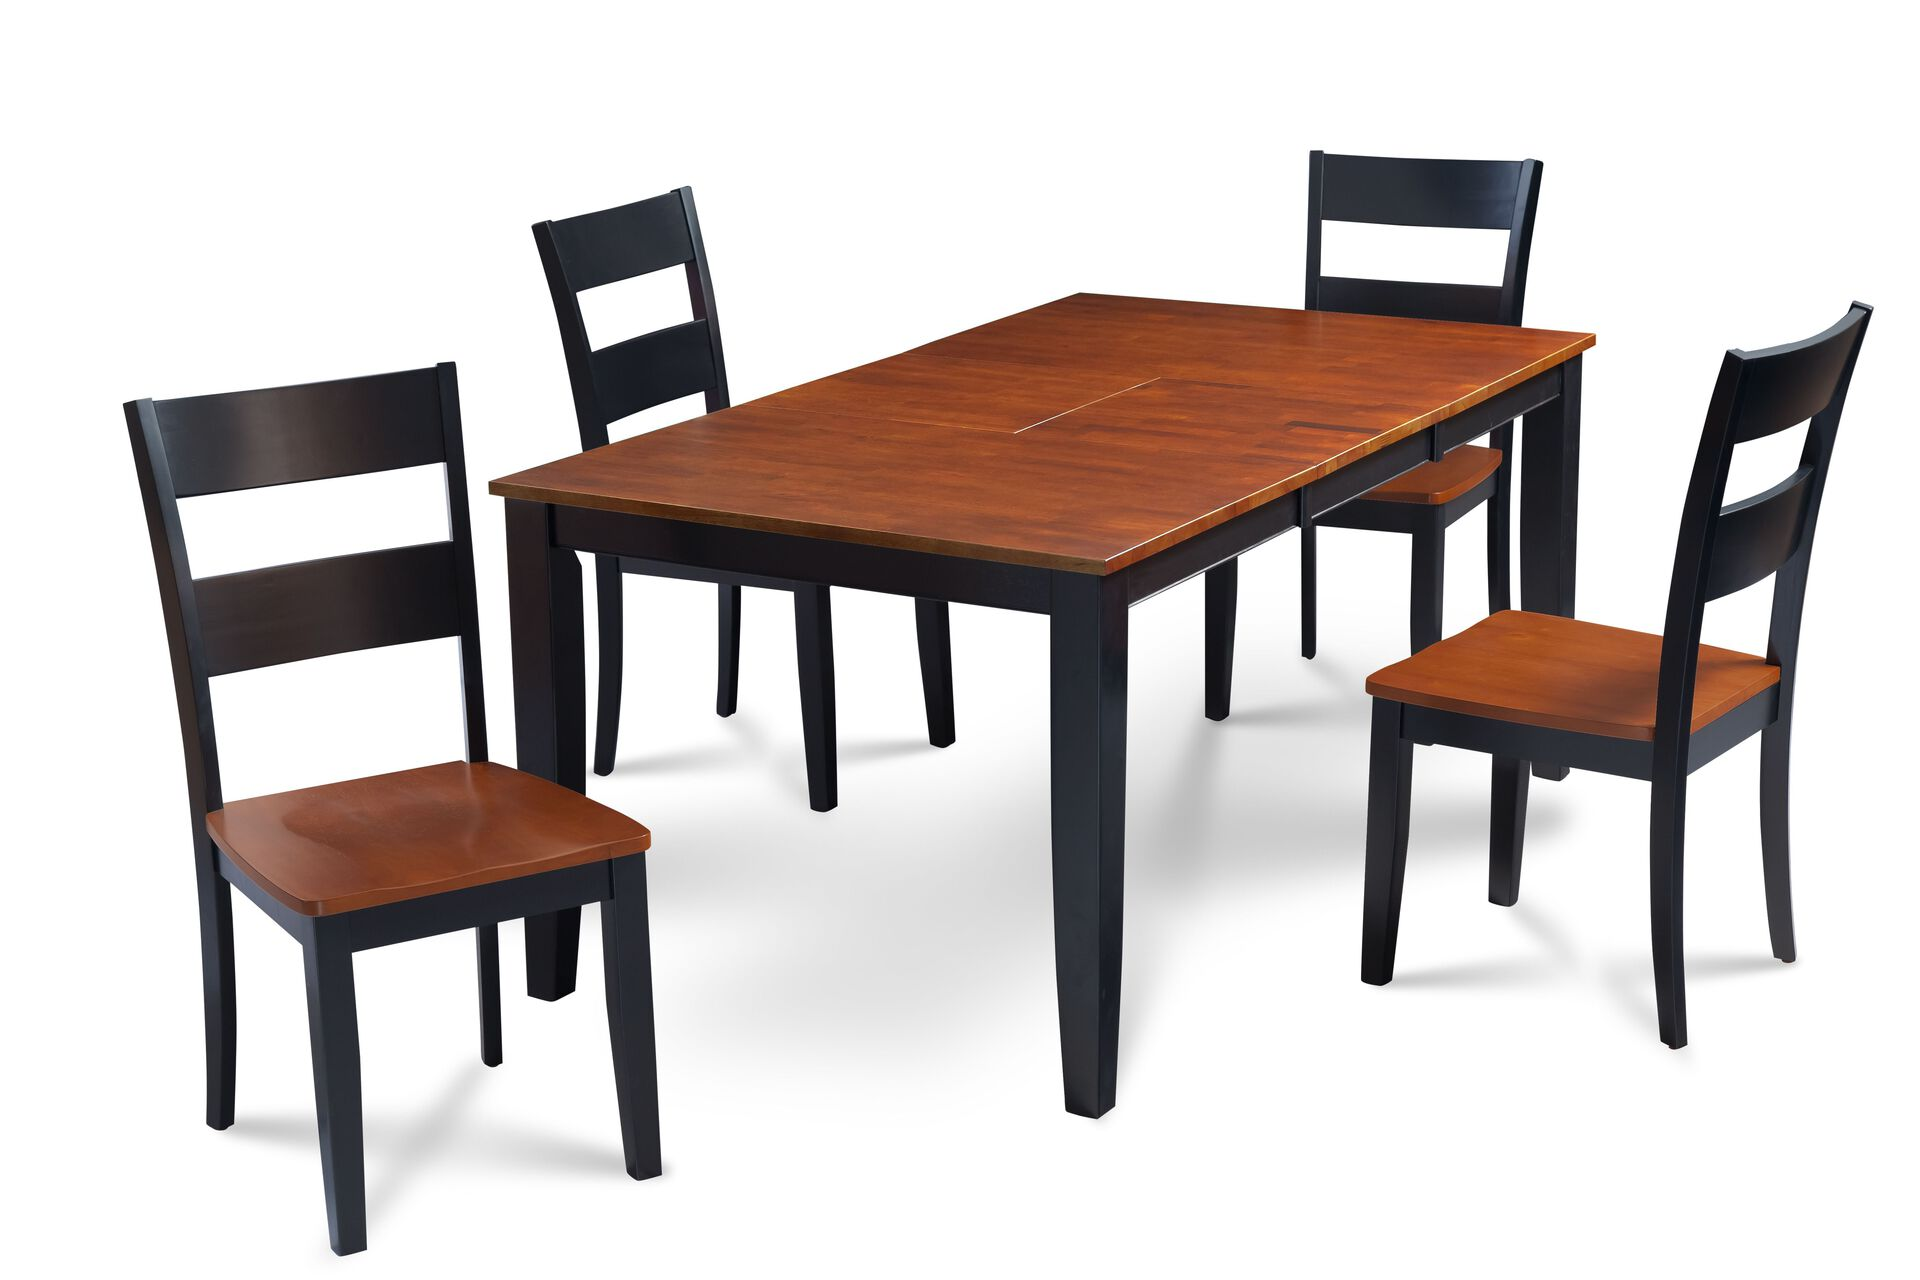 Fullerton Black And Cherry Top Solid Wood Extendable Table 5 Piece Dining Set Trithi Furniture